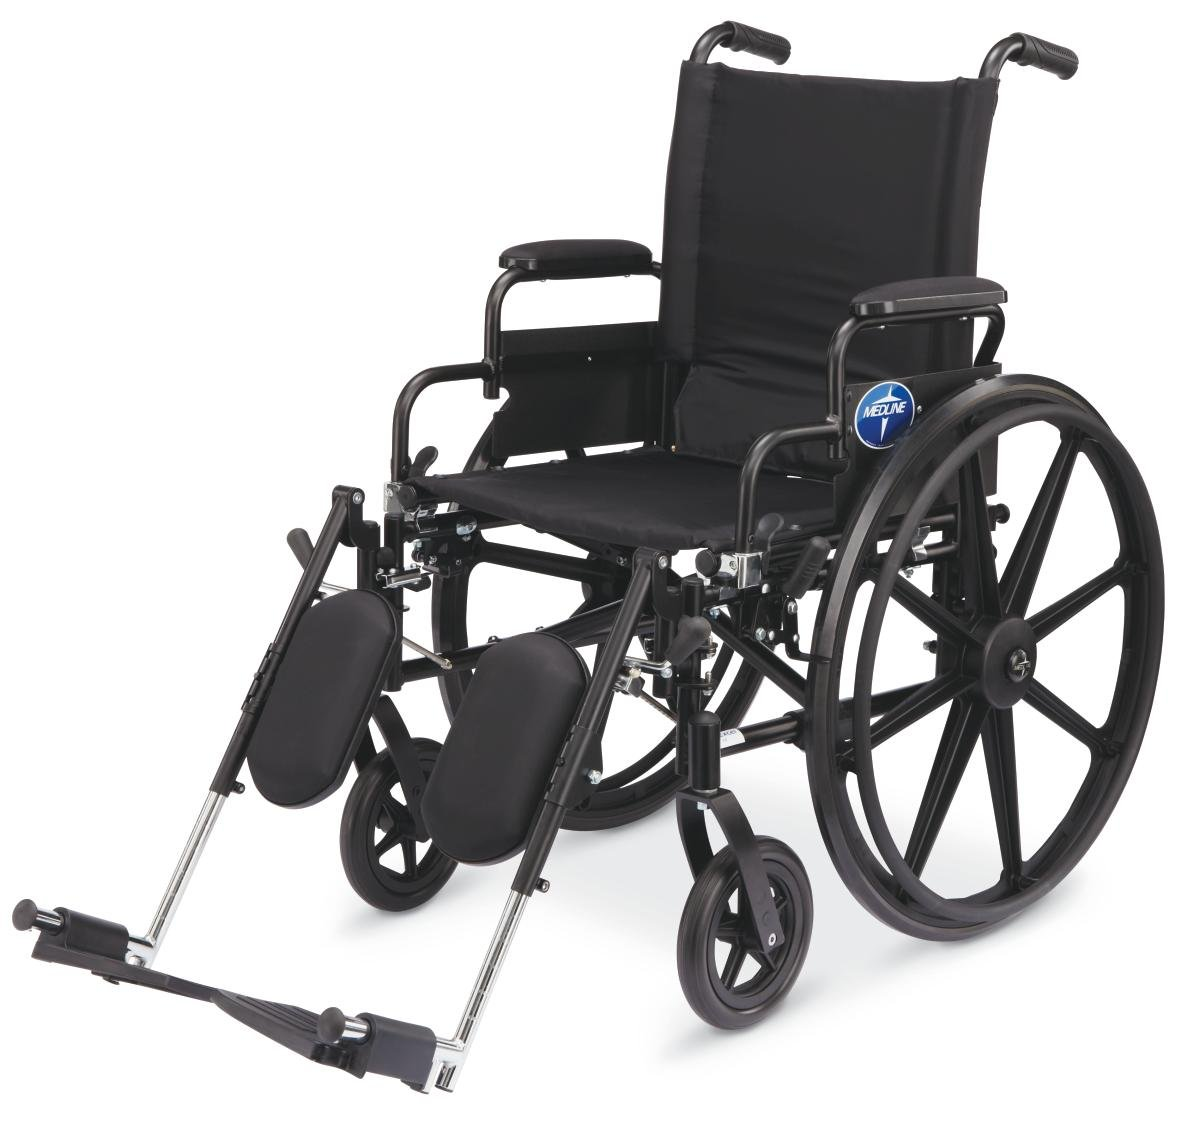 medline-excel-k4-wheelchair-black